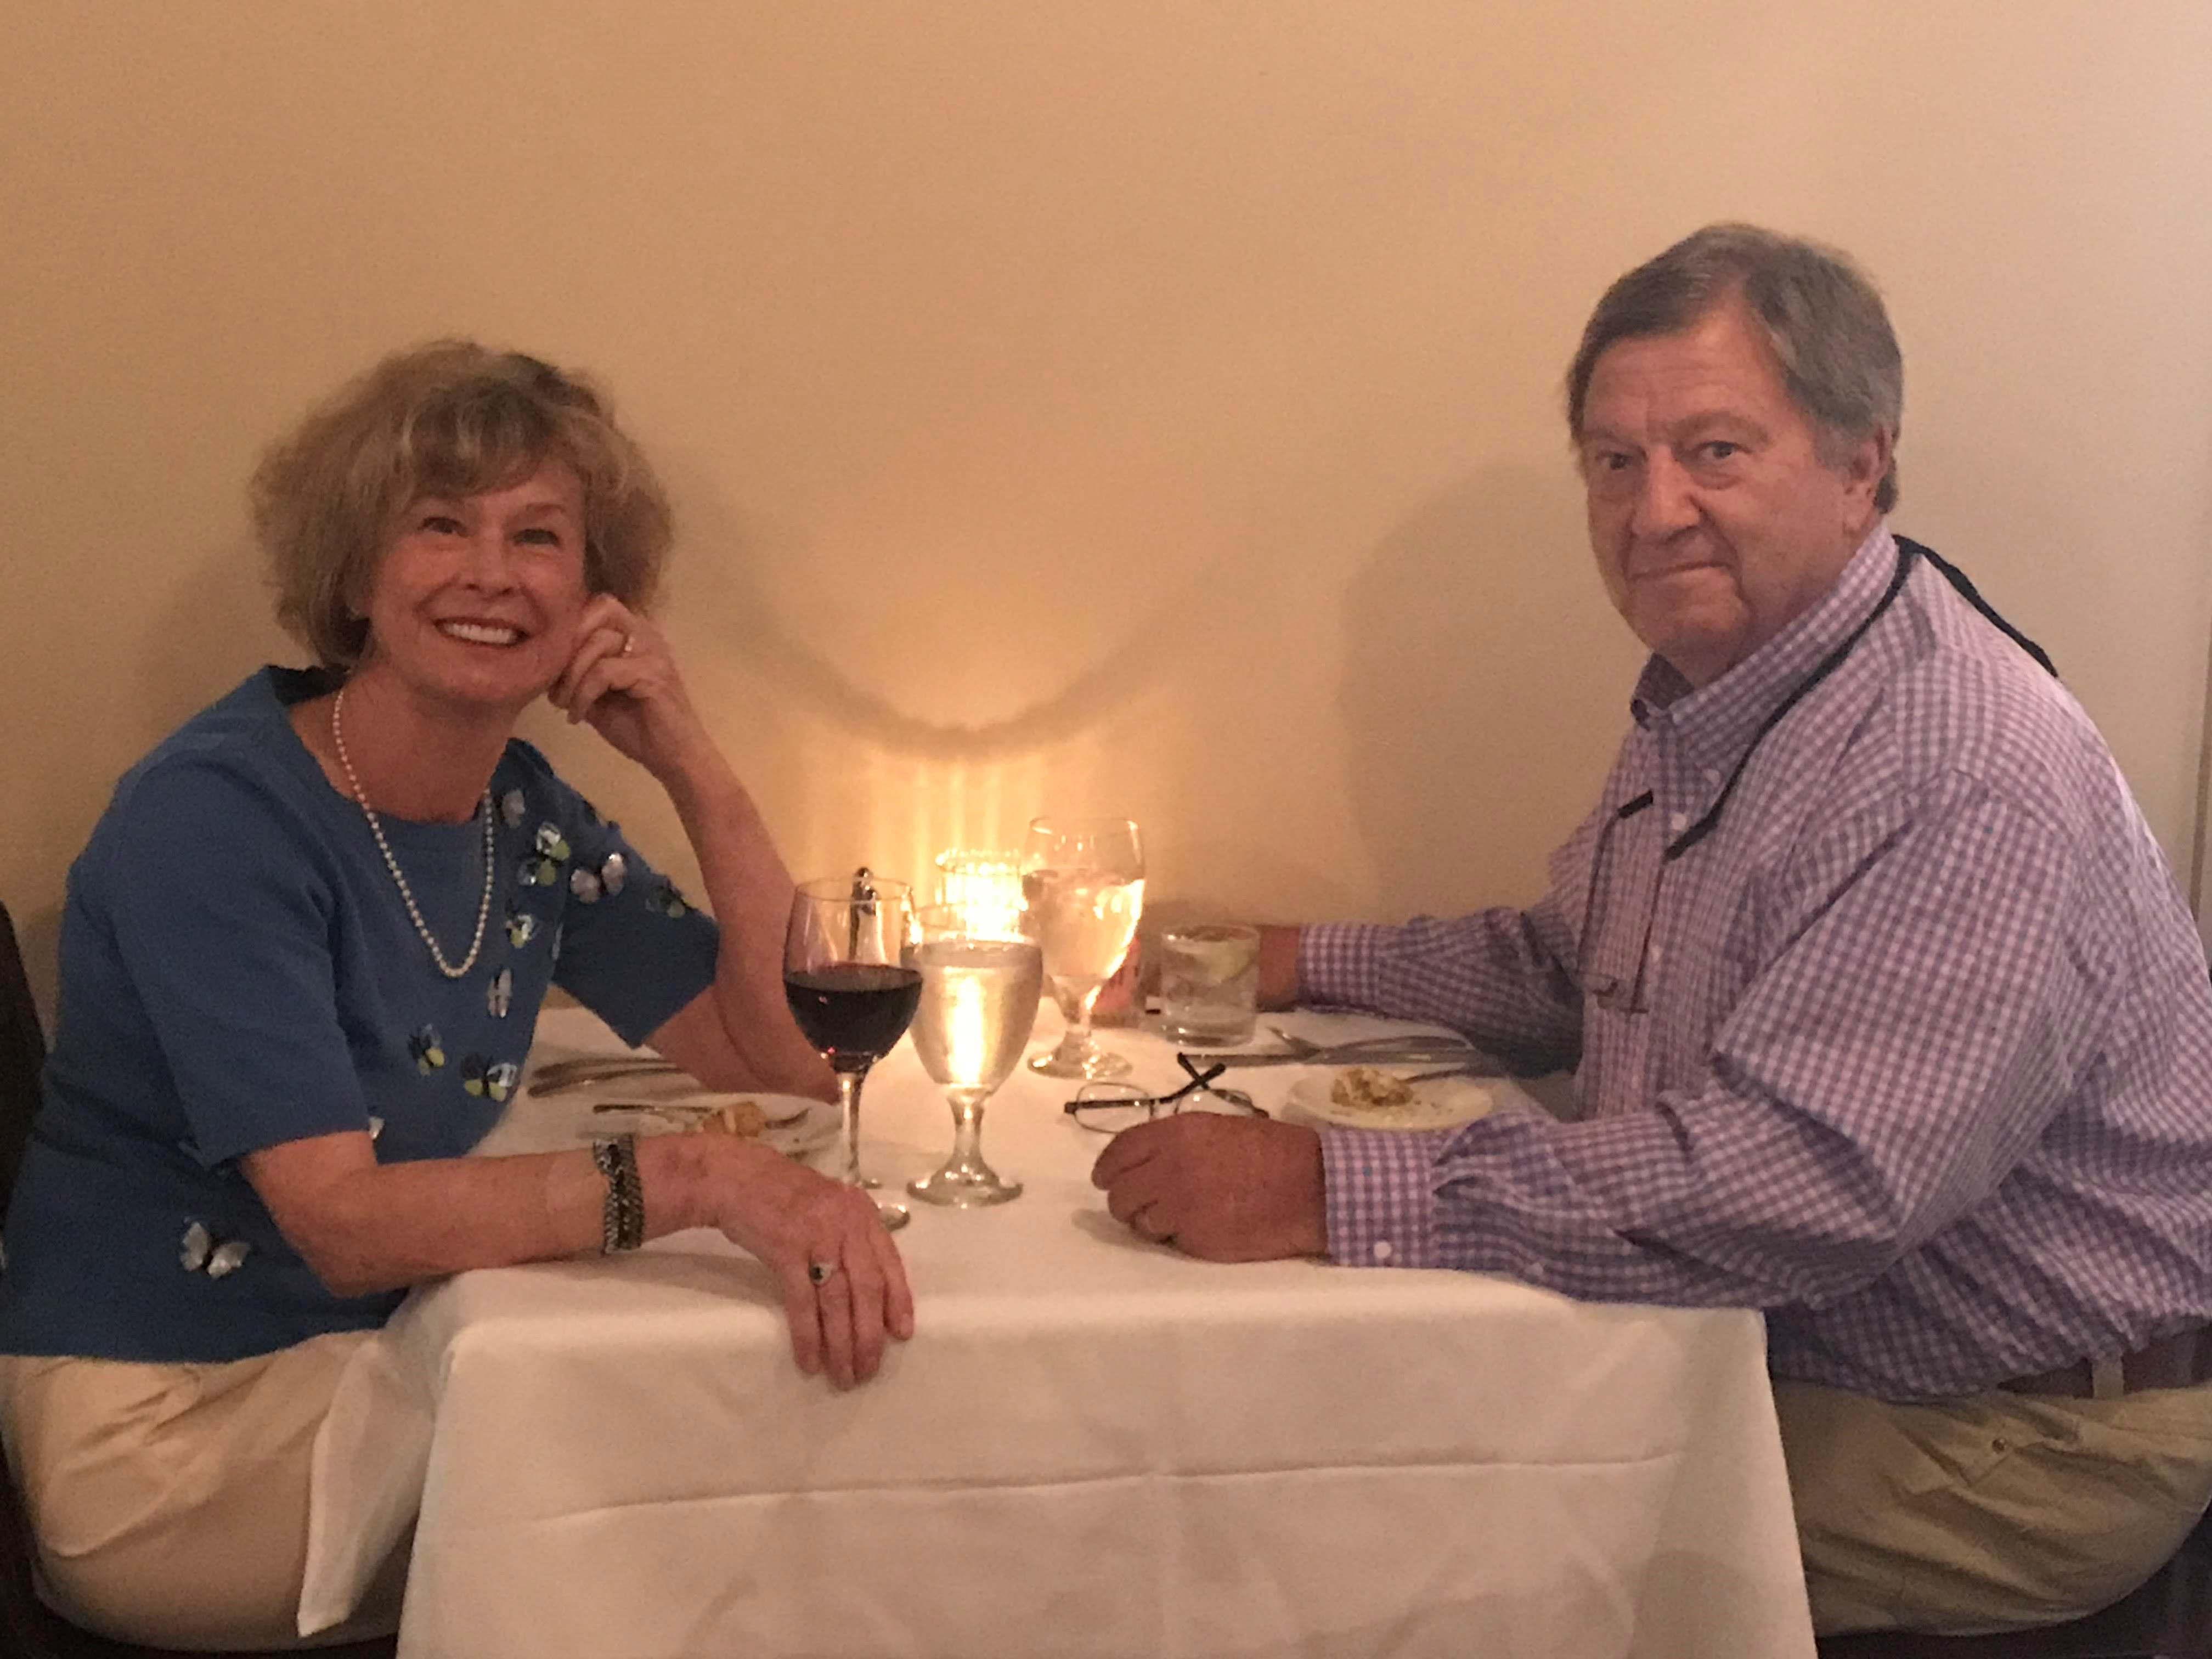 Two alumni sitting at a table over dinner Jeanie VanWinkle PhD and Barry VanWinkle PhD This photo taken in 2017 on Barry's birthday